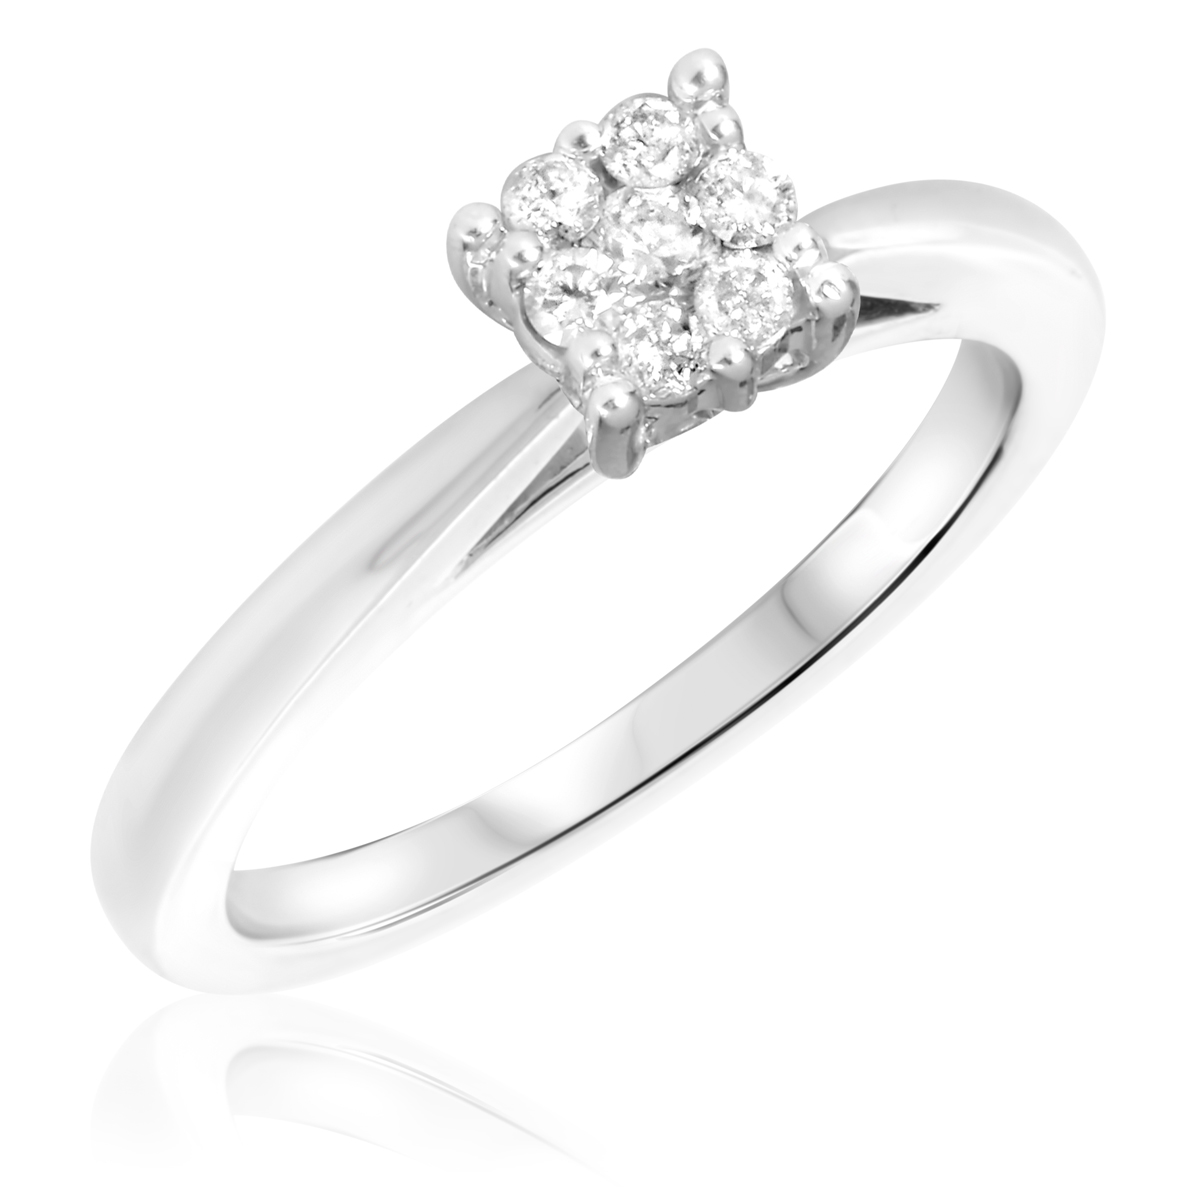 1/5 CT. T.W. Diamond Ladies Engagement Ring 10K White Gold- Size 8